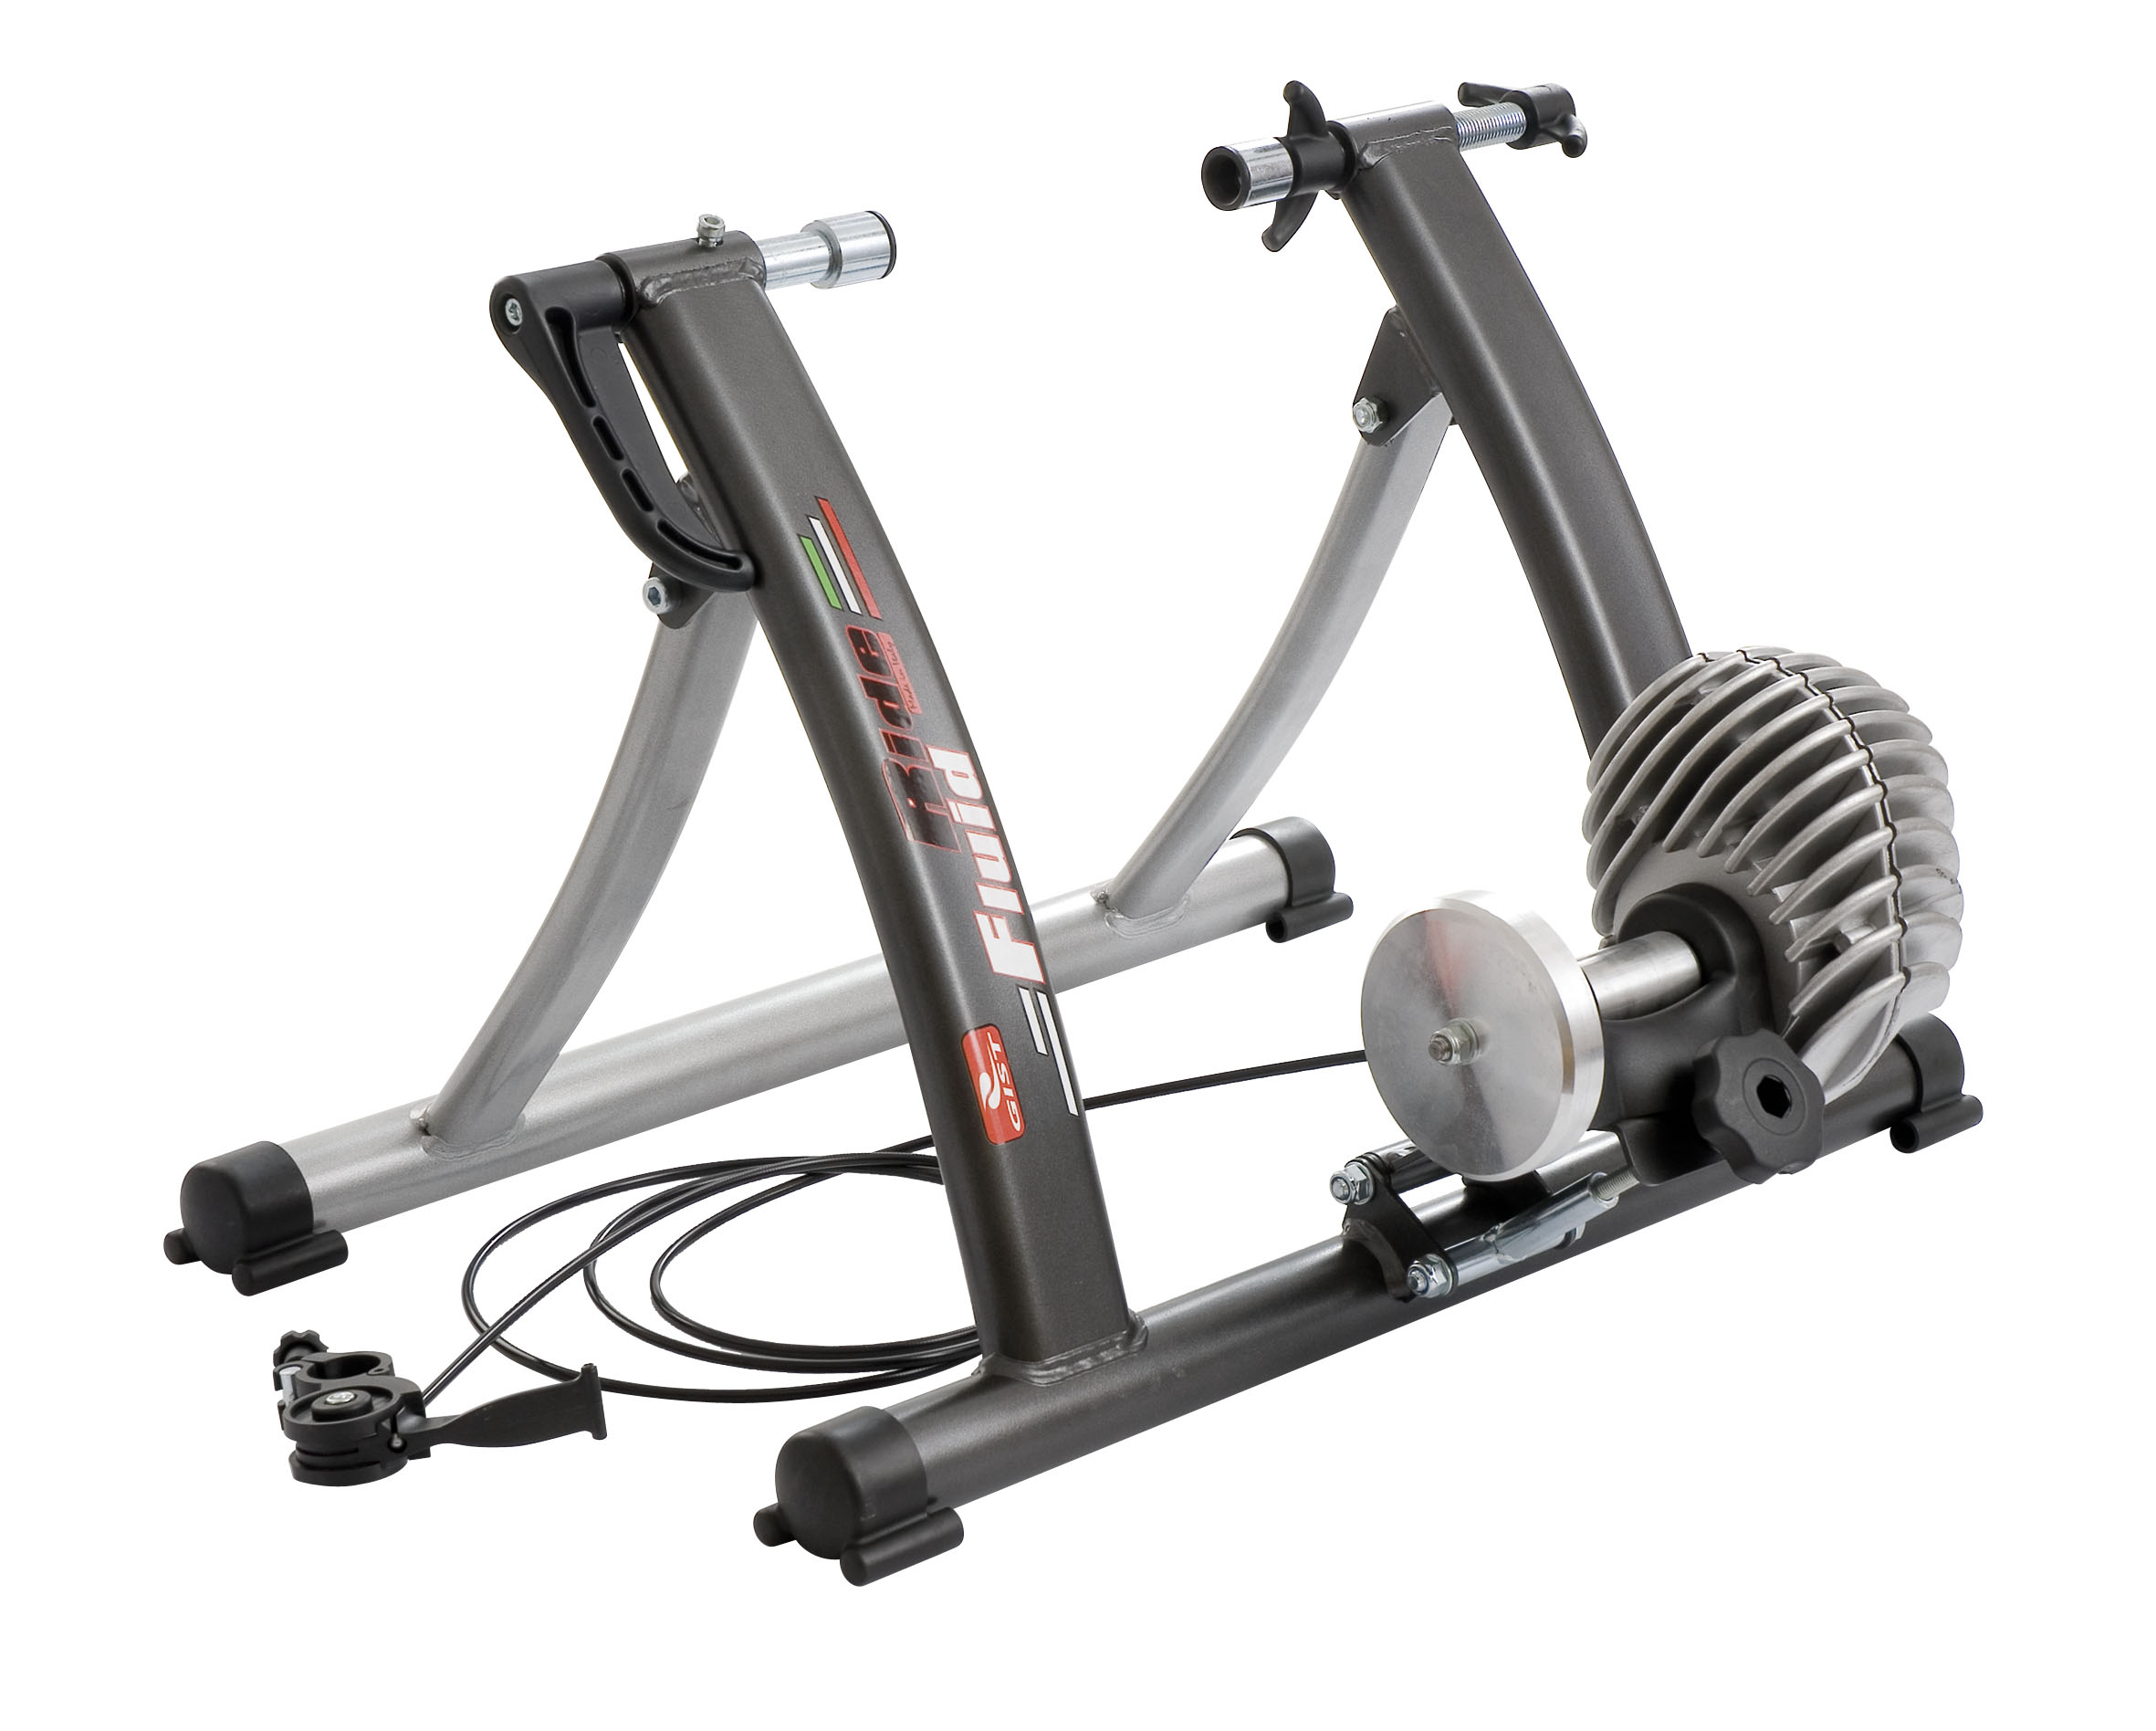 Tools to train also in winter: bicycle training rollers